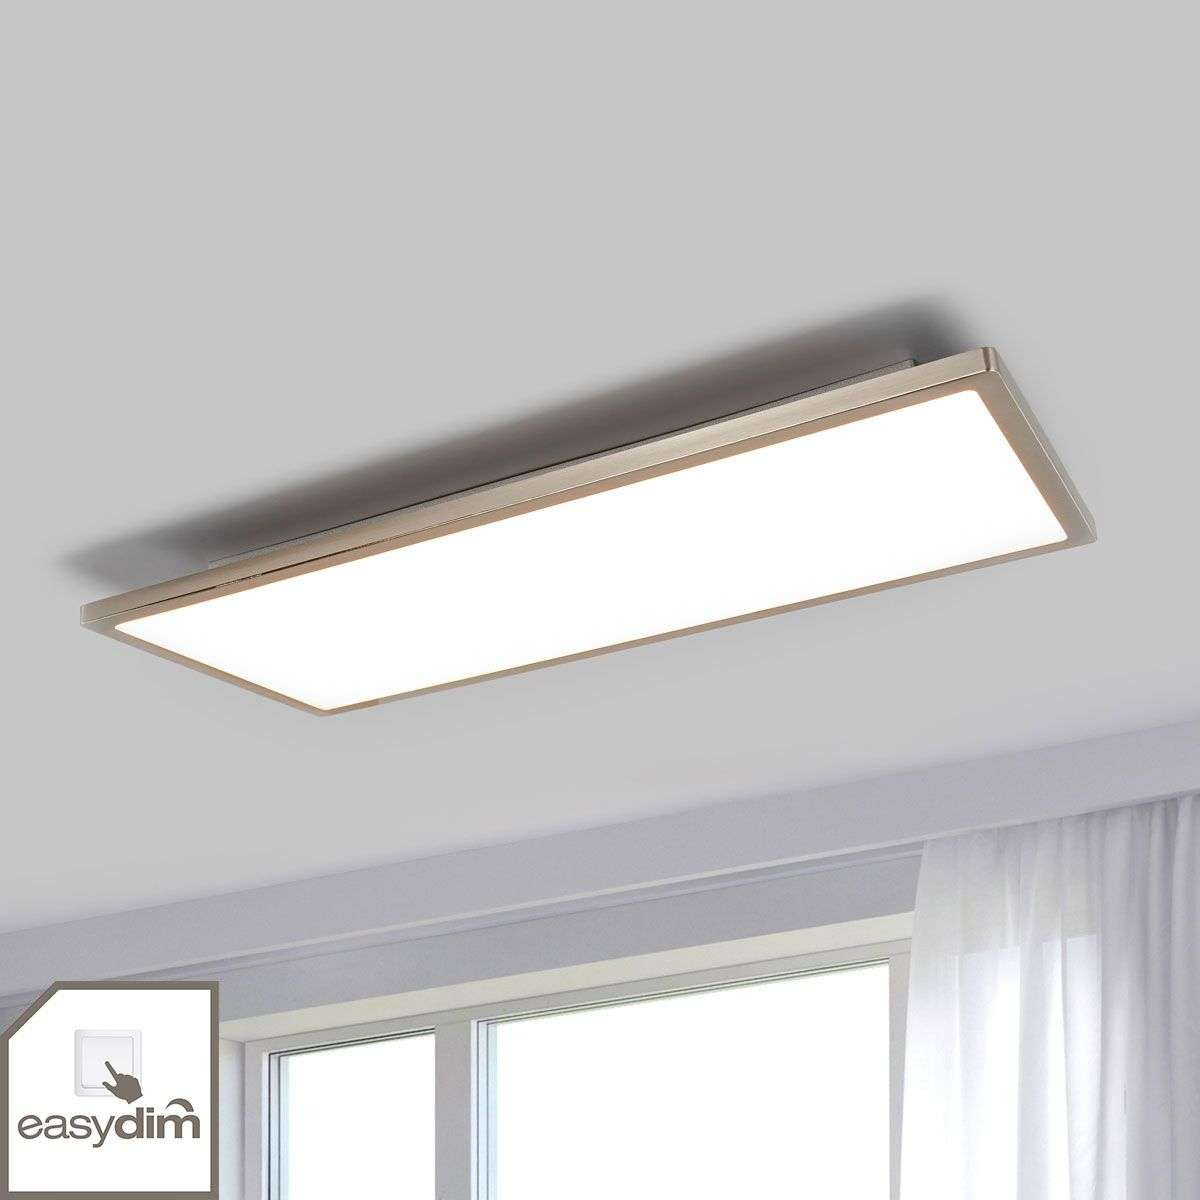 Oblong LED Ceiling Light Ceres With Easydim 1509148 32